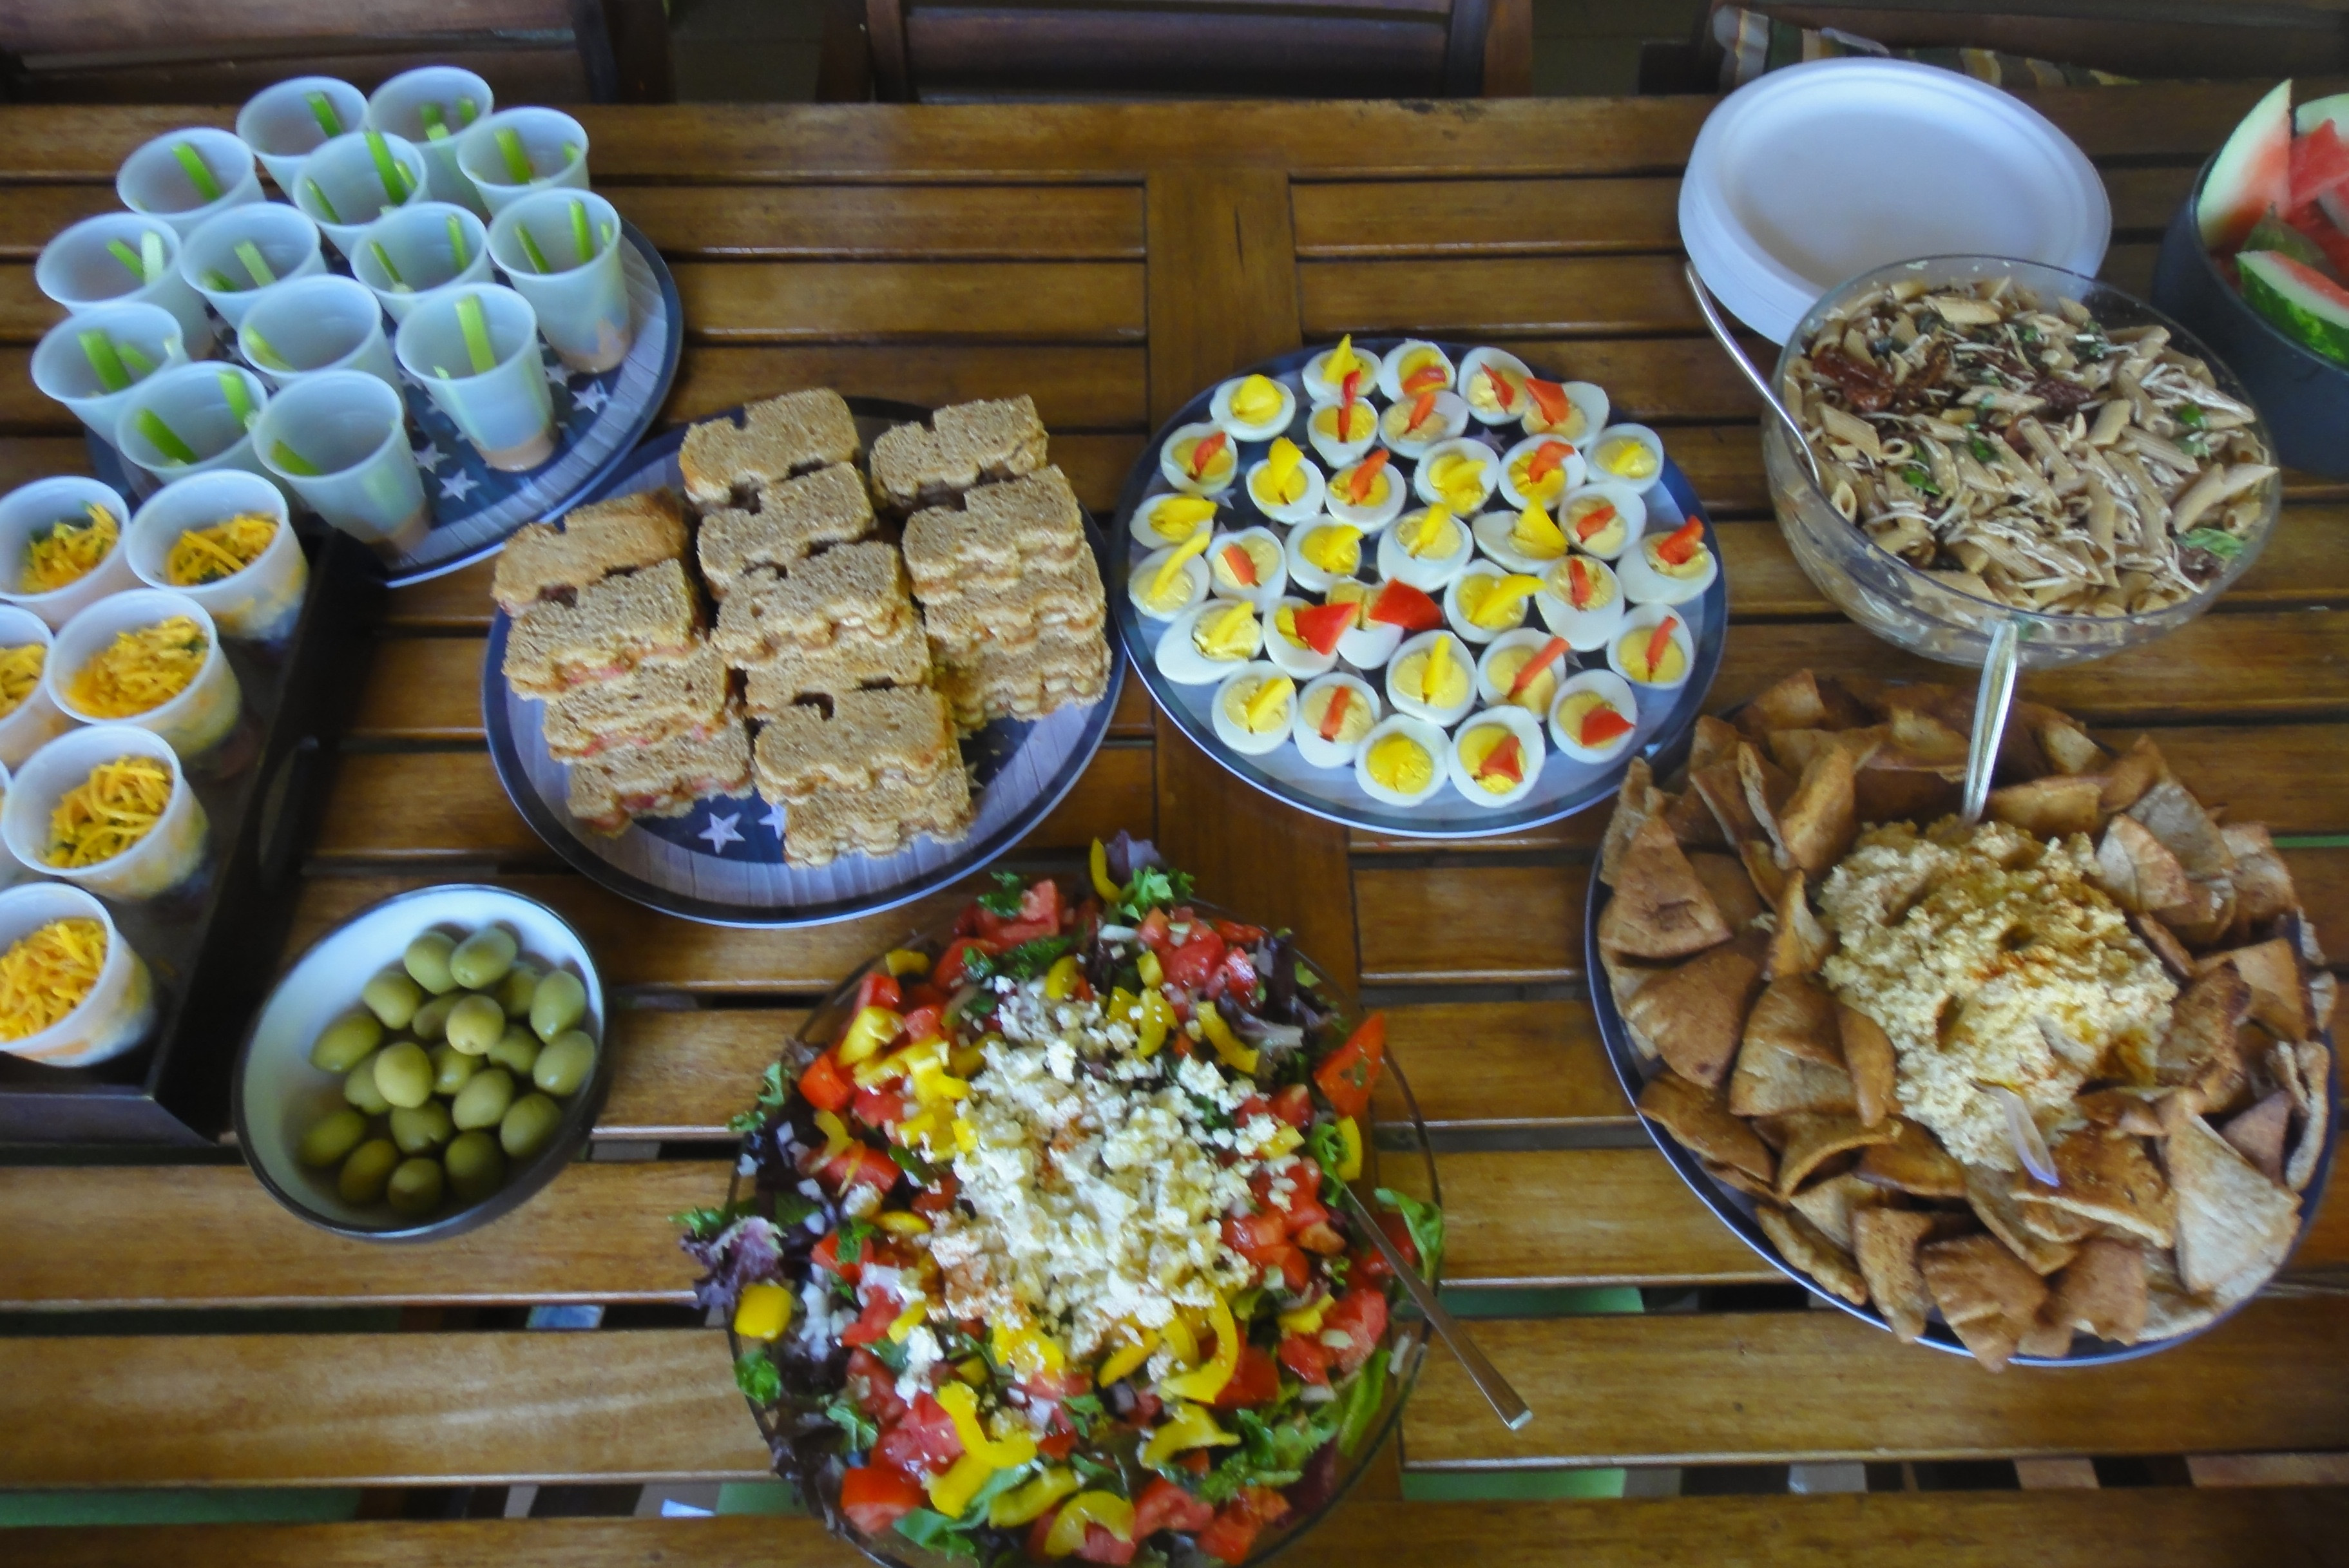 Healthy Snacks For A Party  Construction Themed Party